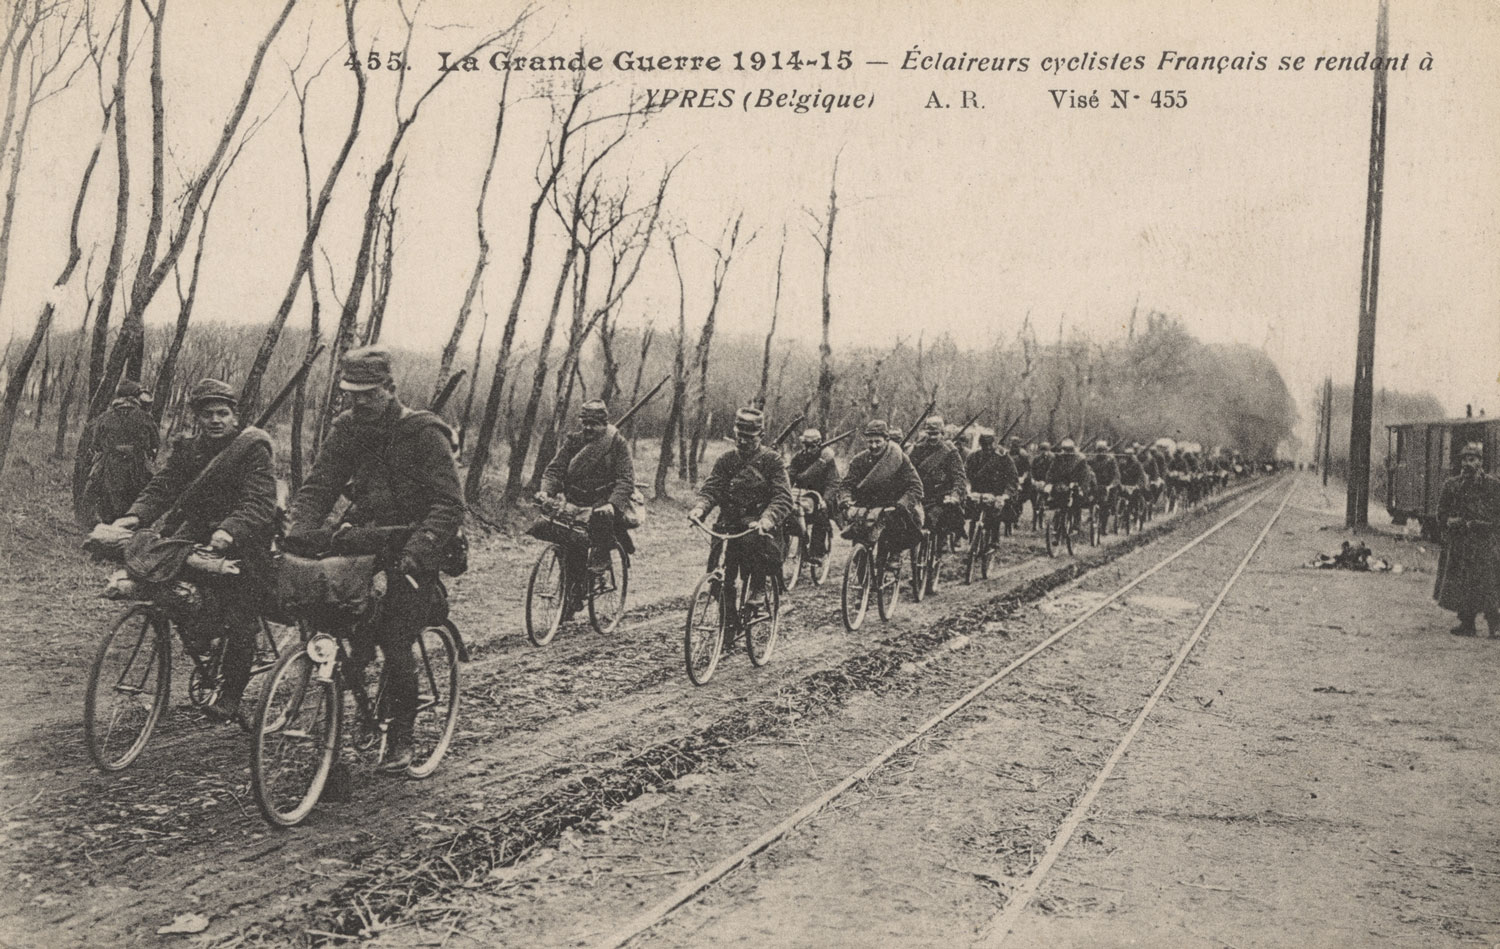 Postcard of French military bicycle scouts riding on a road en route to Ypres, Belgium, in formation (all photos courtesy of National WWI Museum and Memorial)